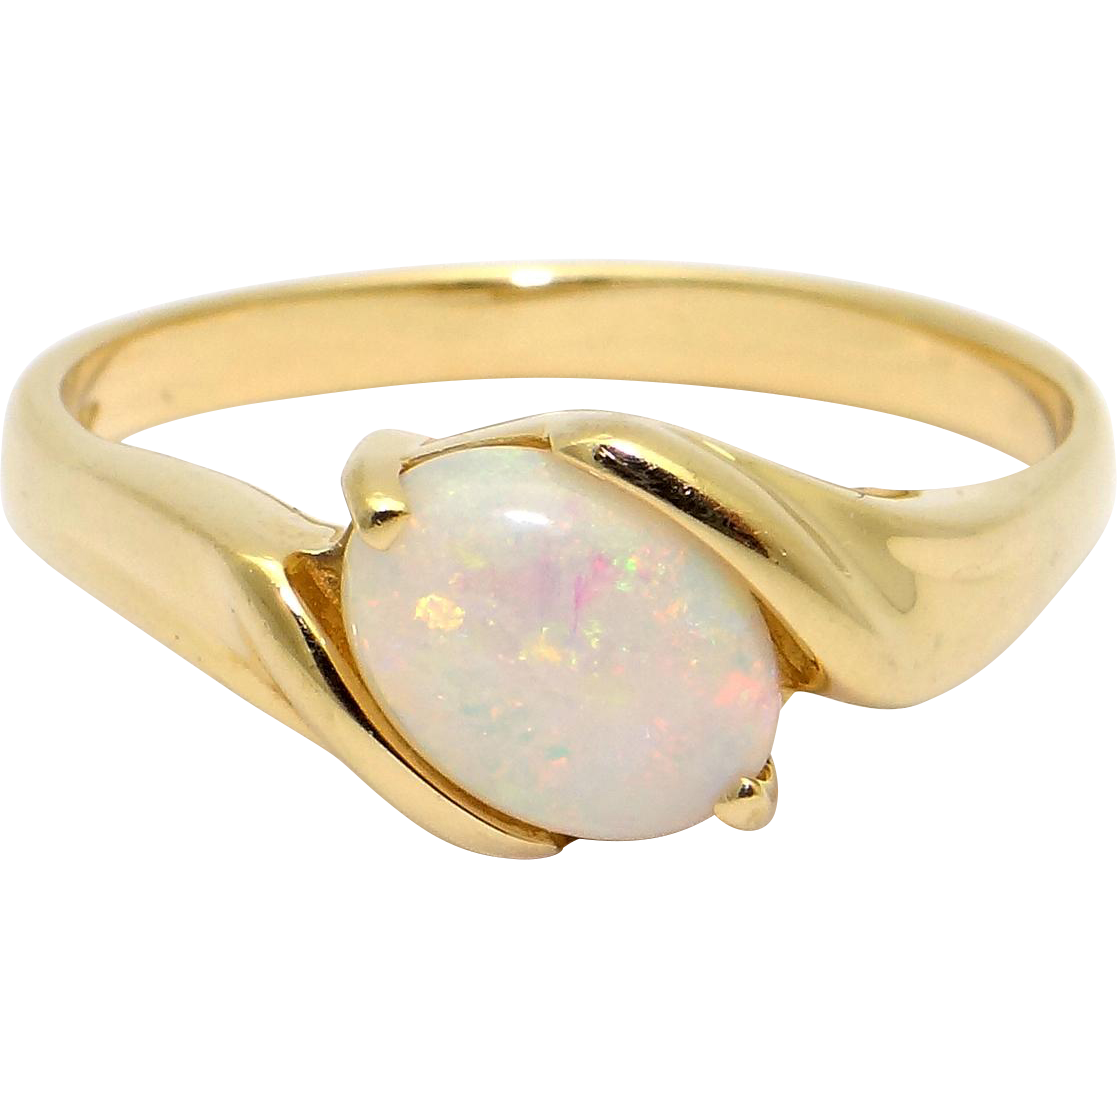 14k yellow gold 75ct multi color opal solitaire band ring